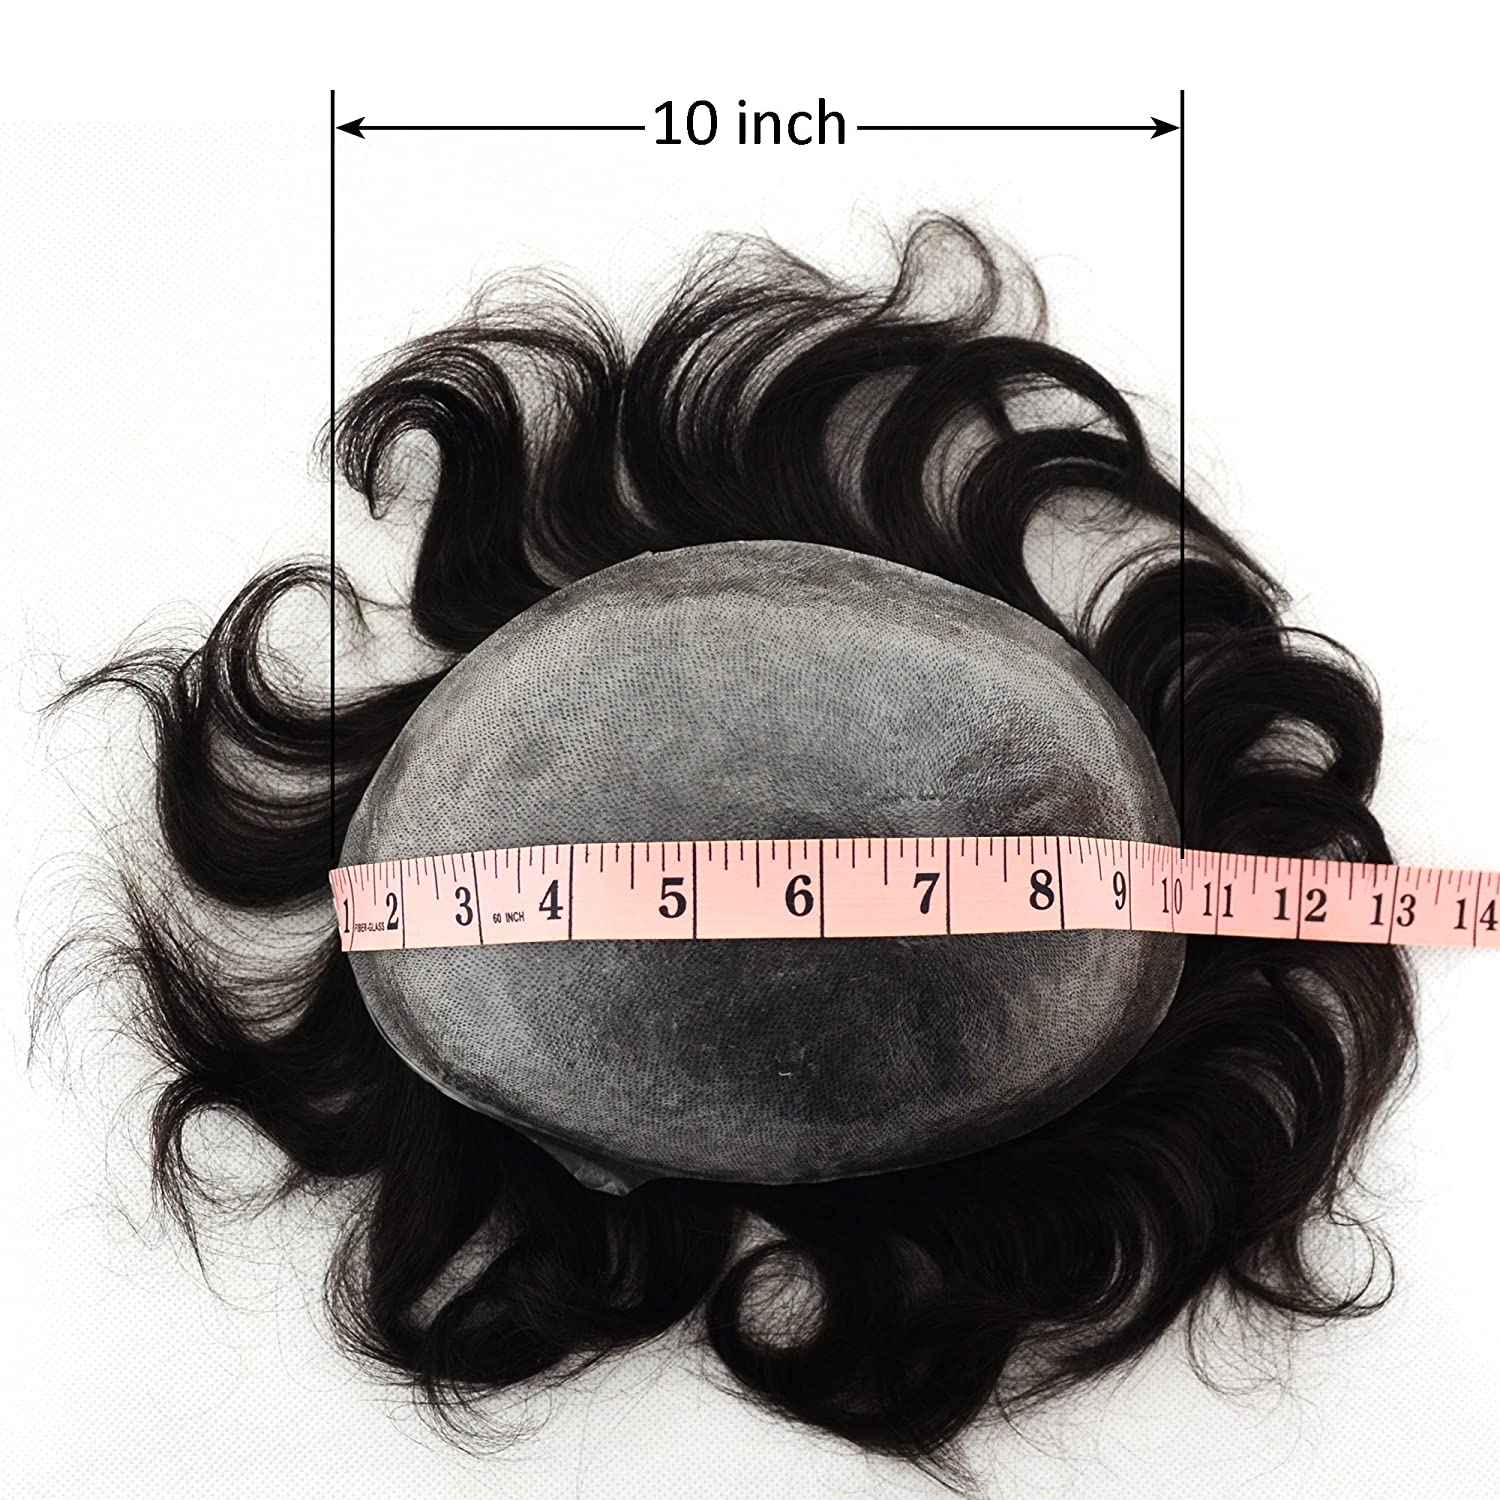 Amazon.com : Thin Skin Mens Toupee Real Human Hair Pieces V-looped, European Virgin Human Hair Replacement System For Men Natural Wave Hair Off Black ...